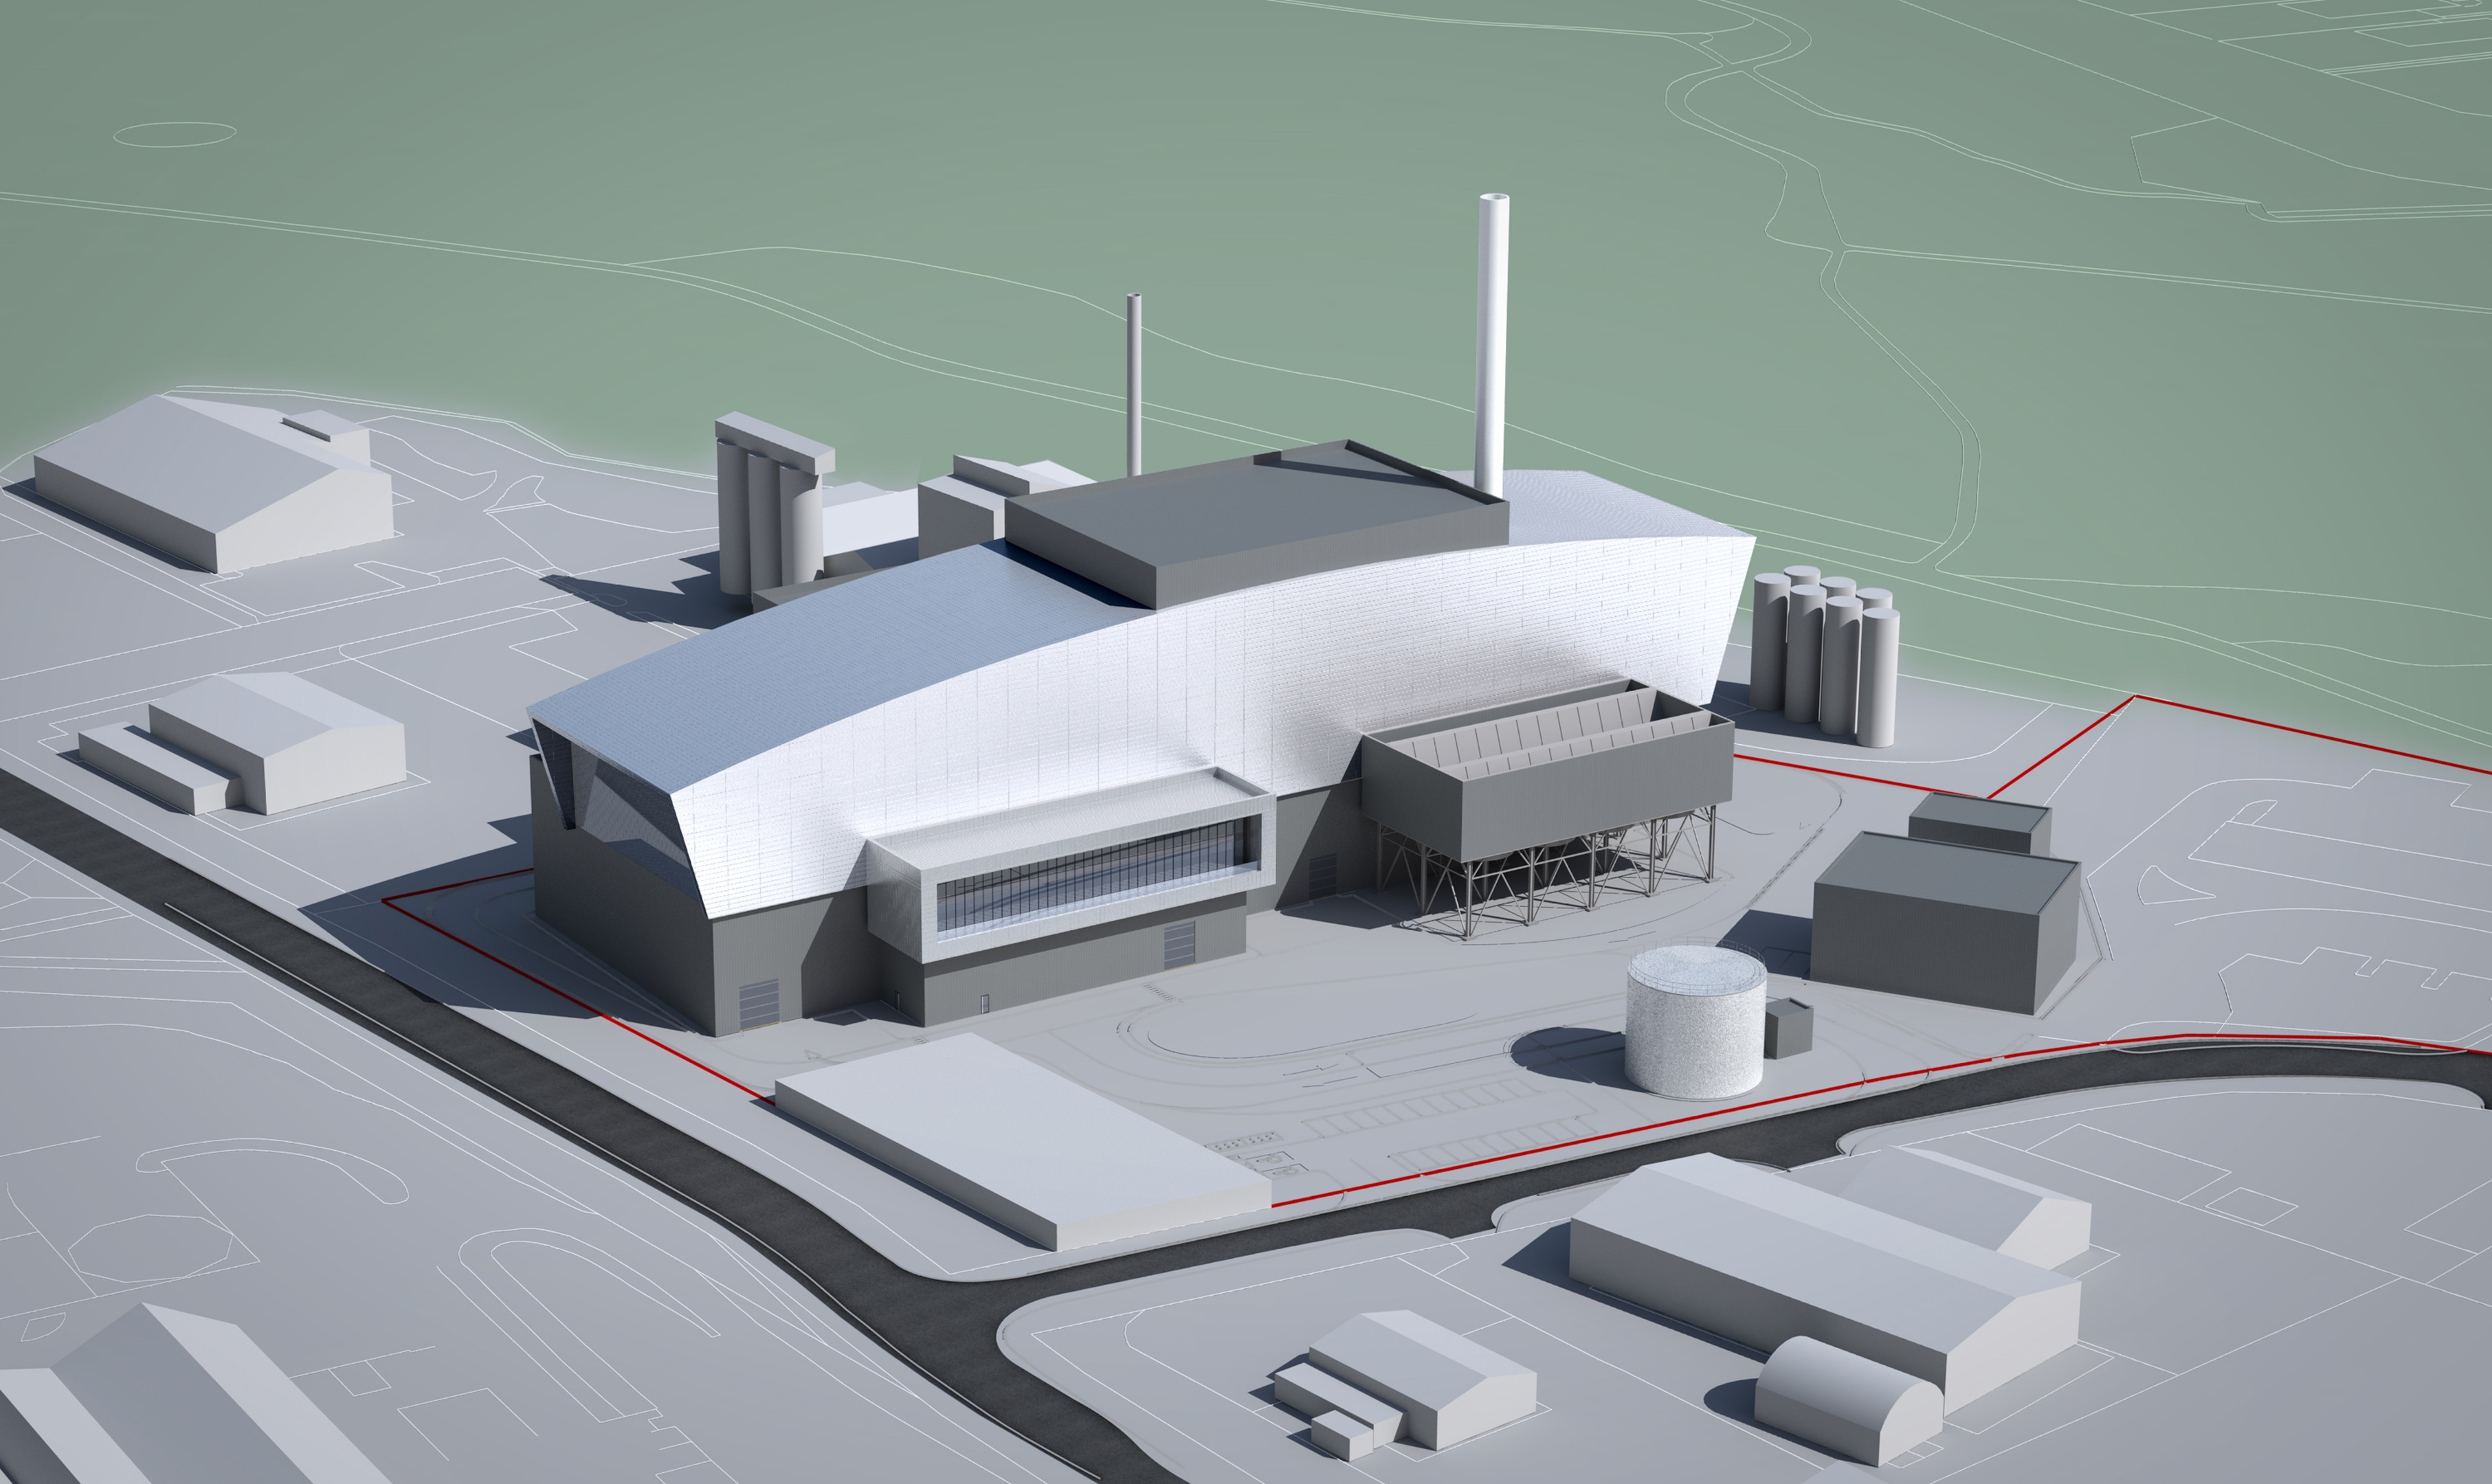 These images show what a new £120m waste facility would look like